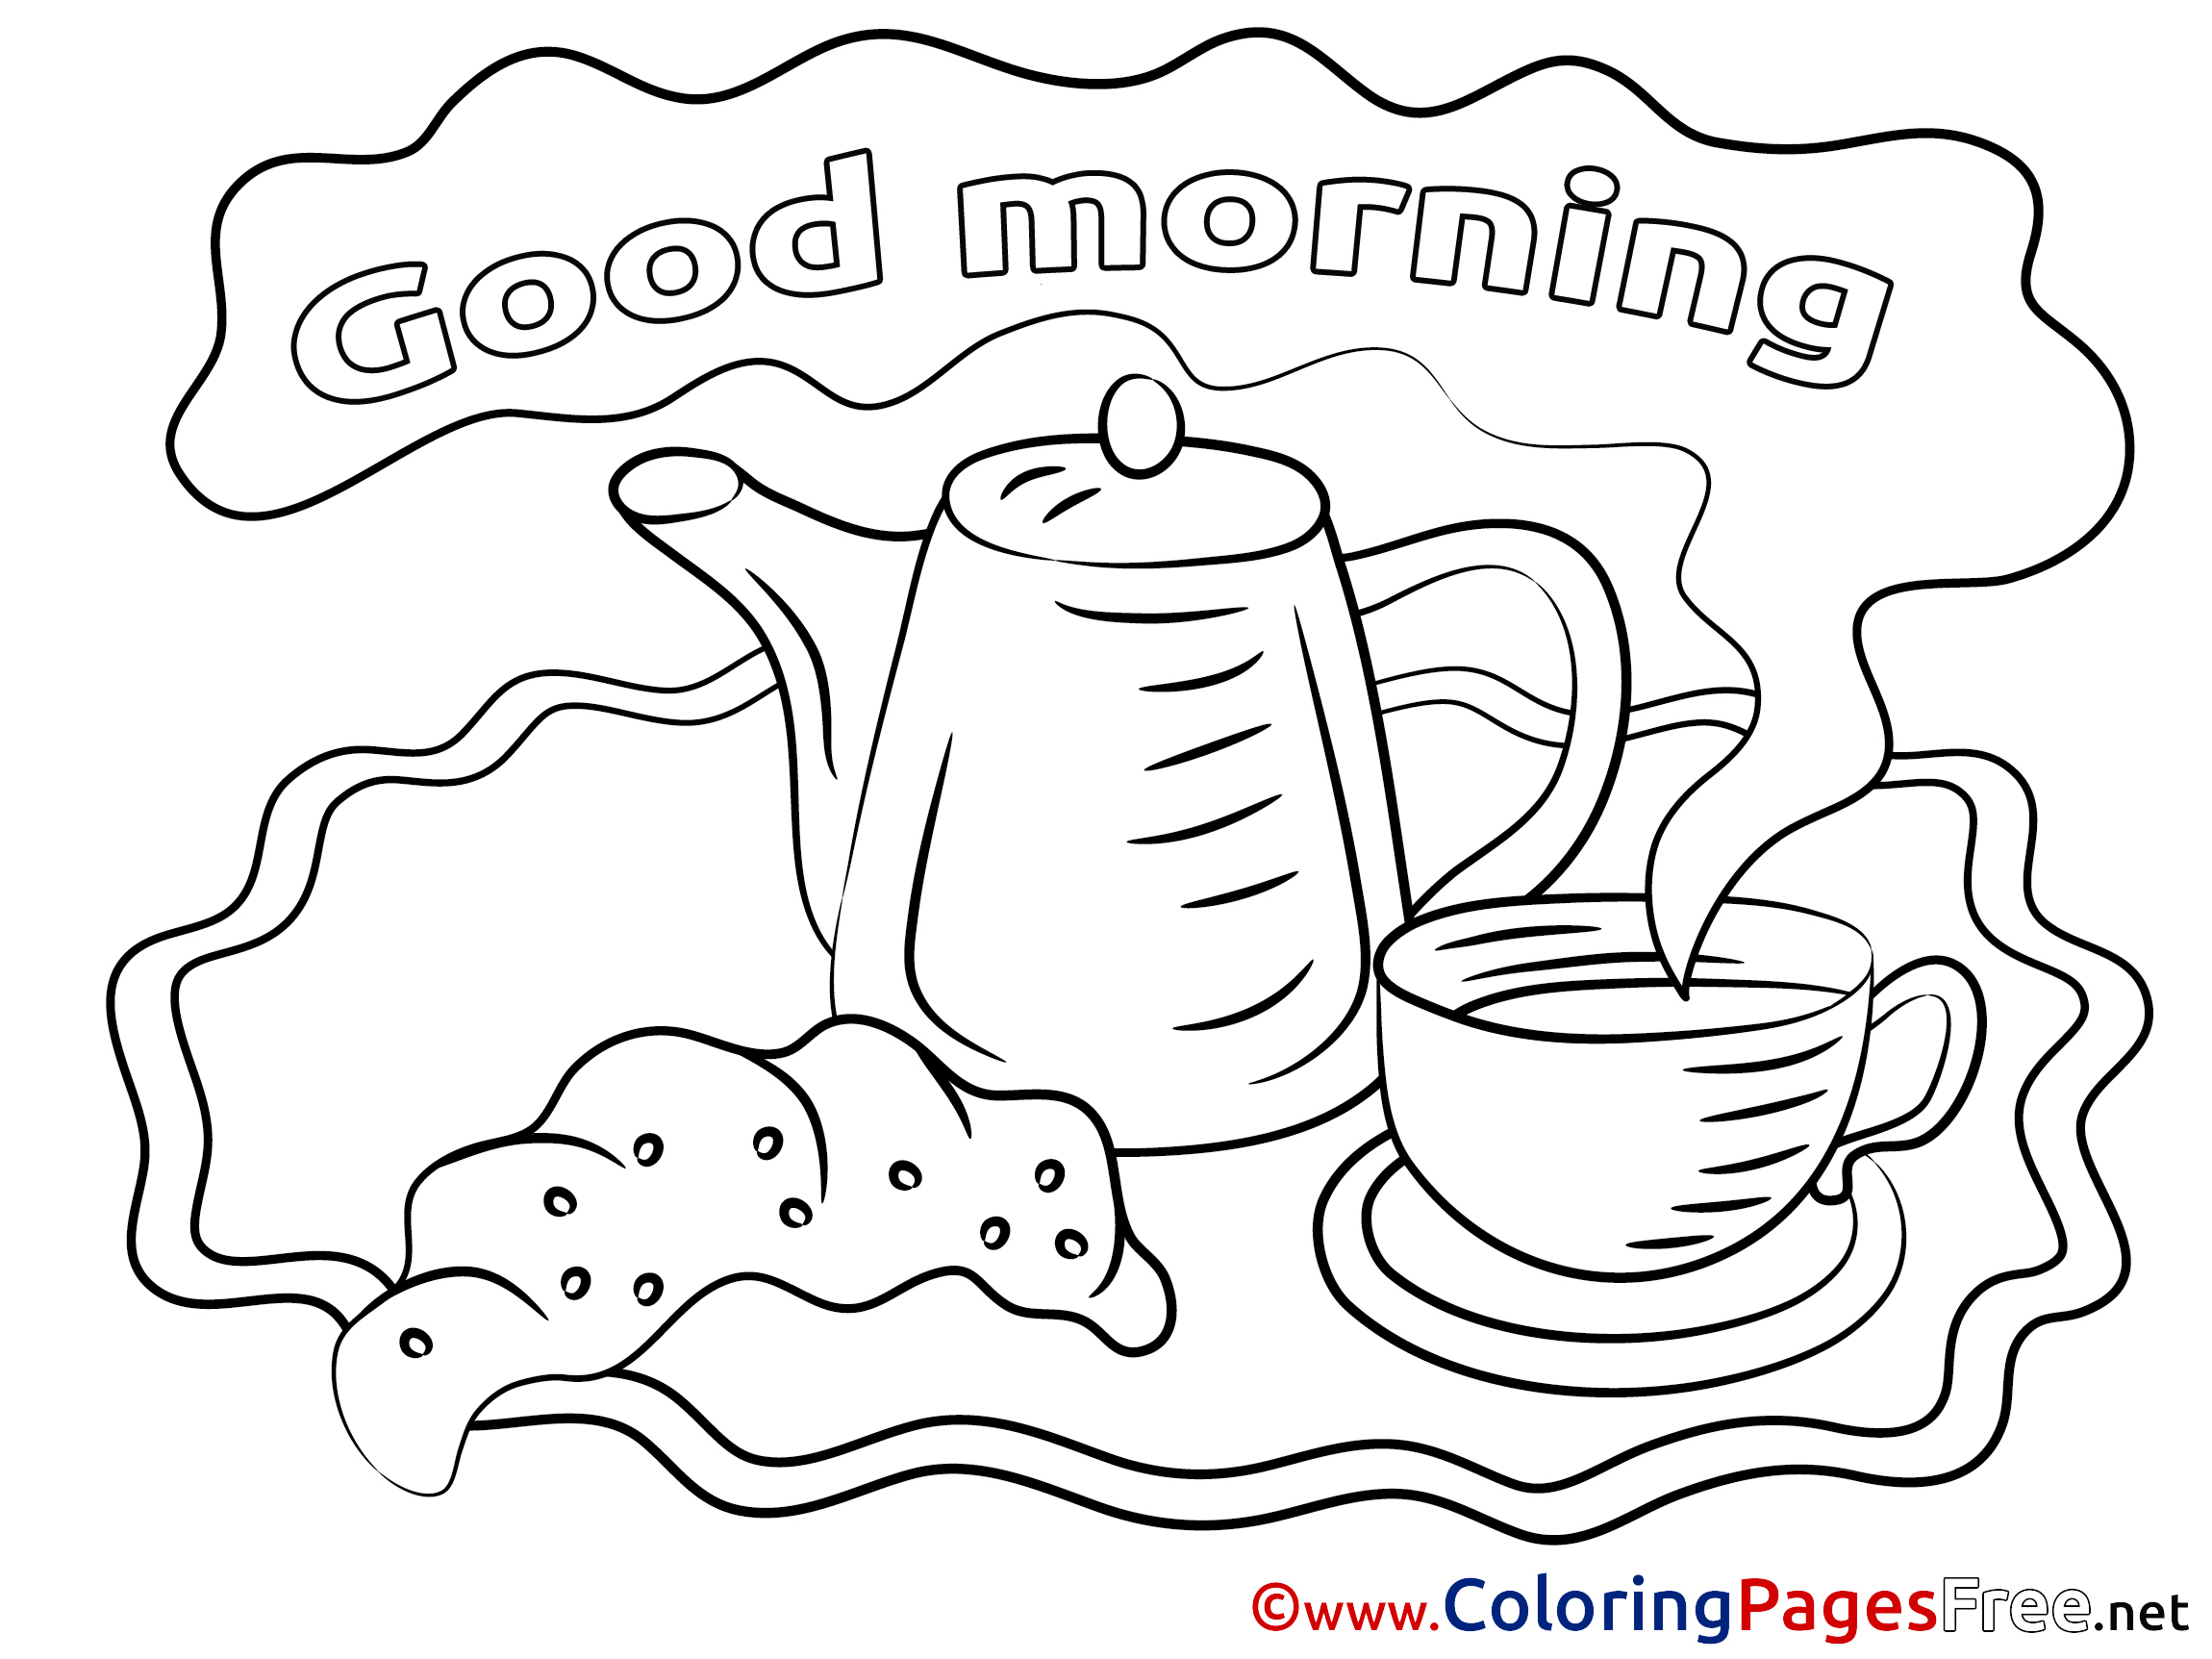 2300x1725 Kettle Coloring Sheets Good Morning Free